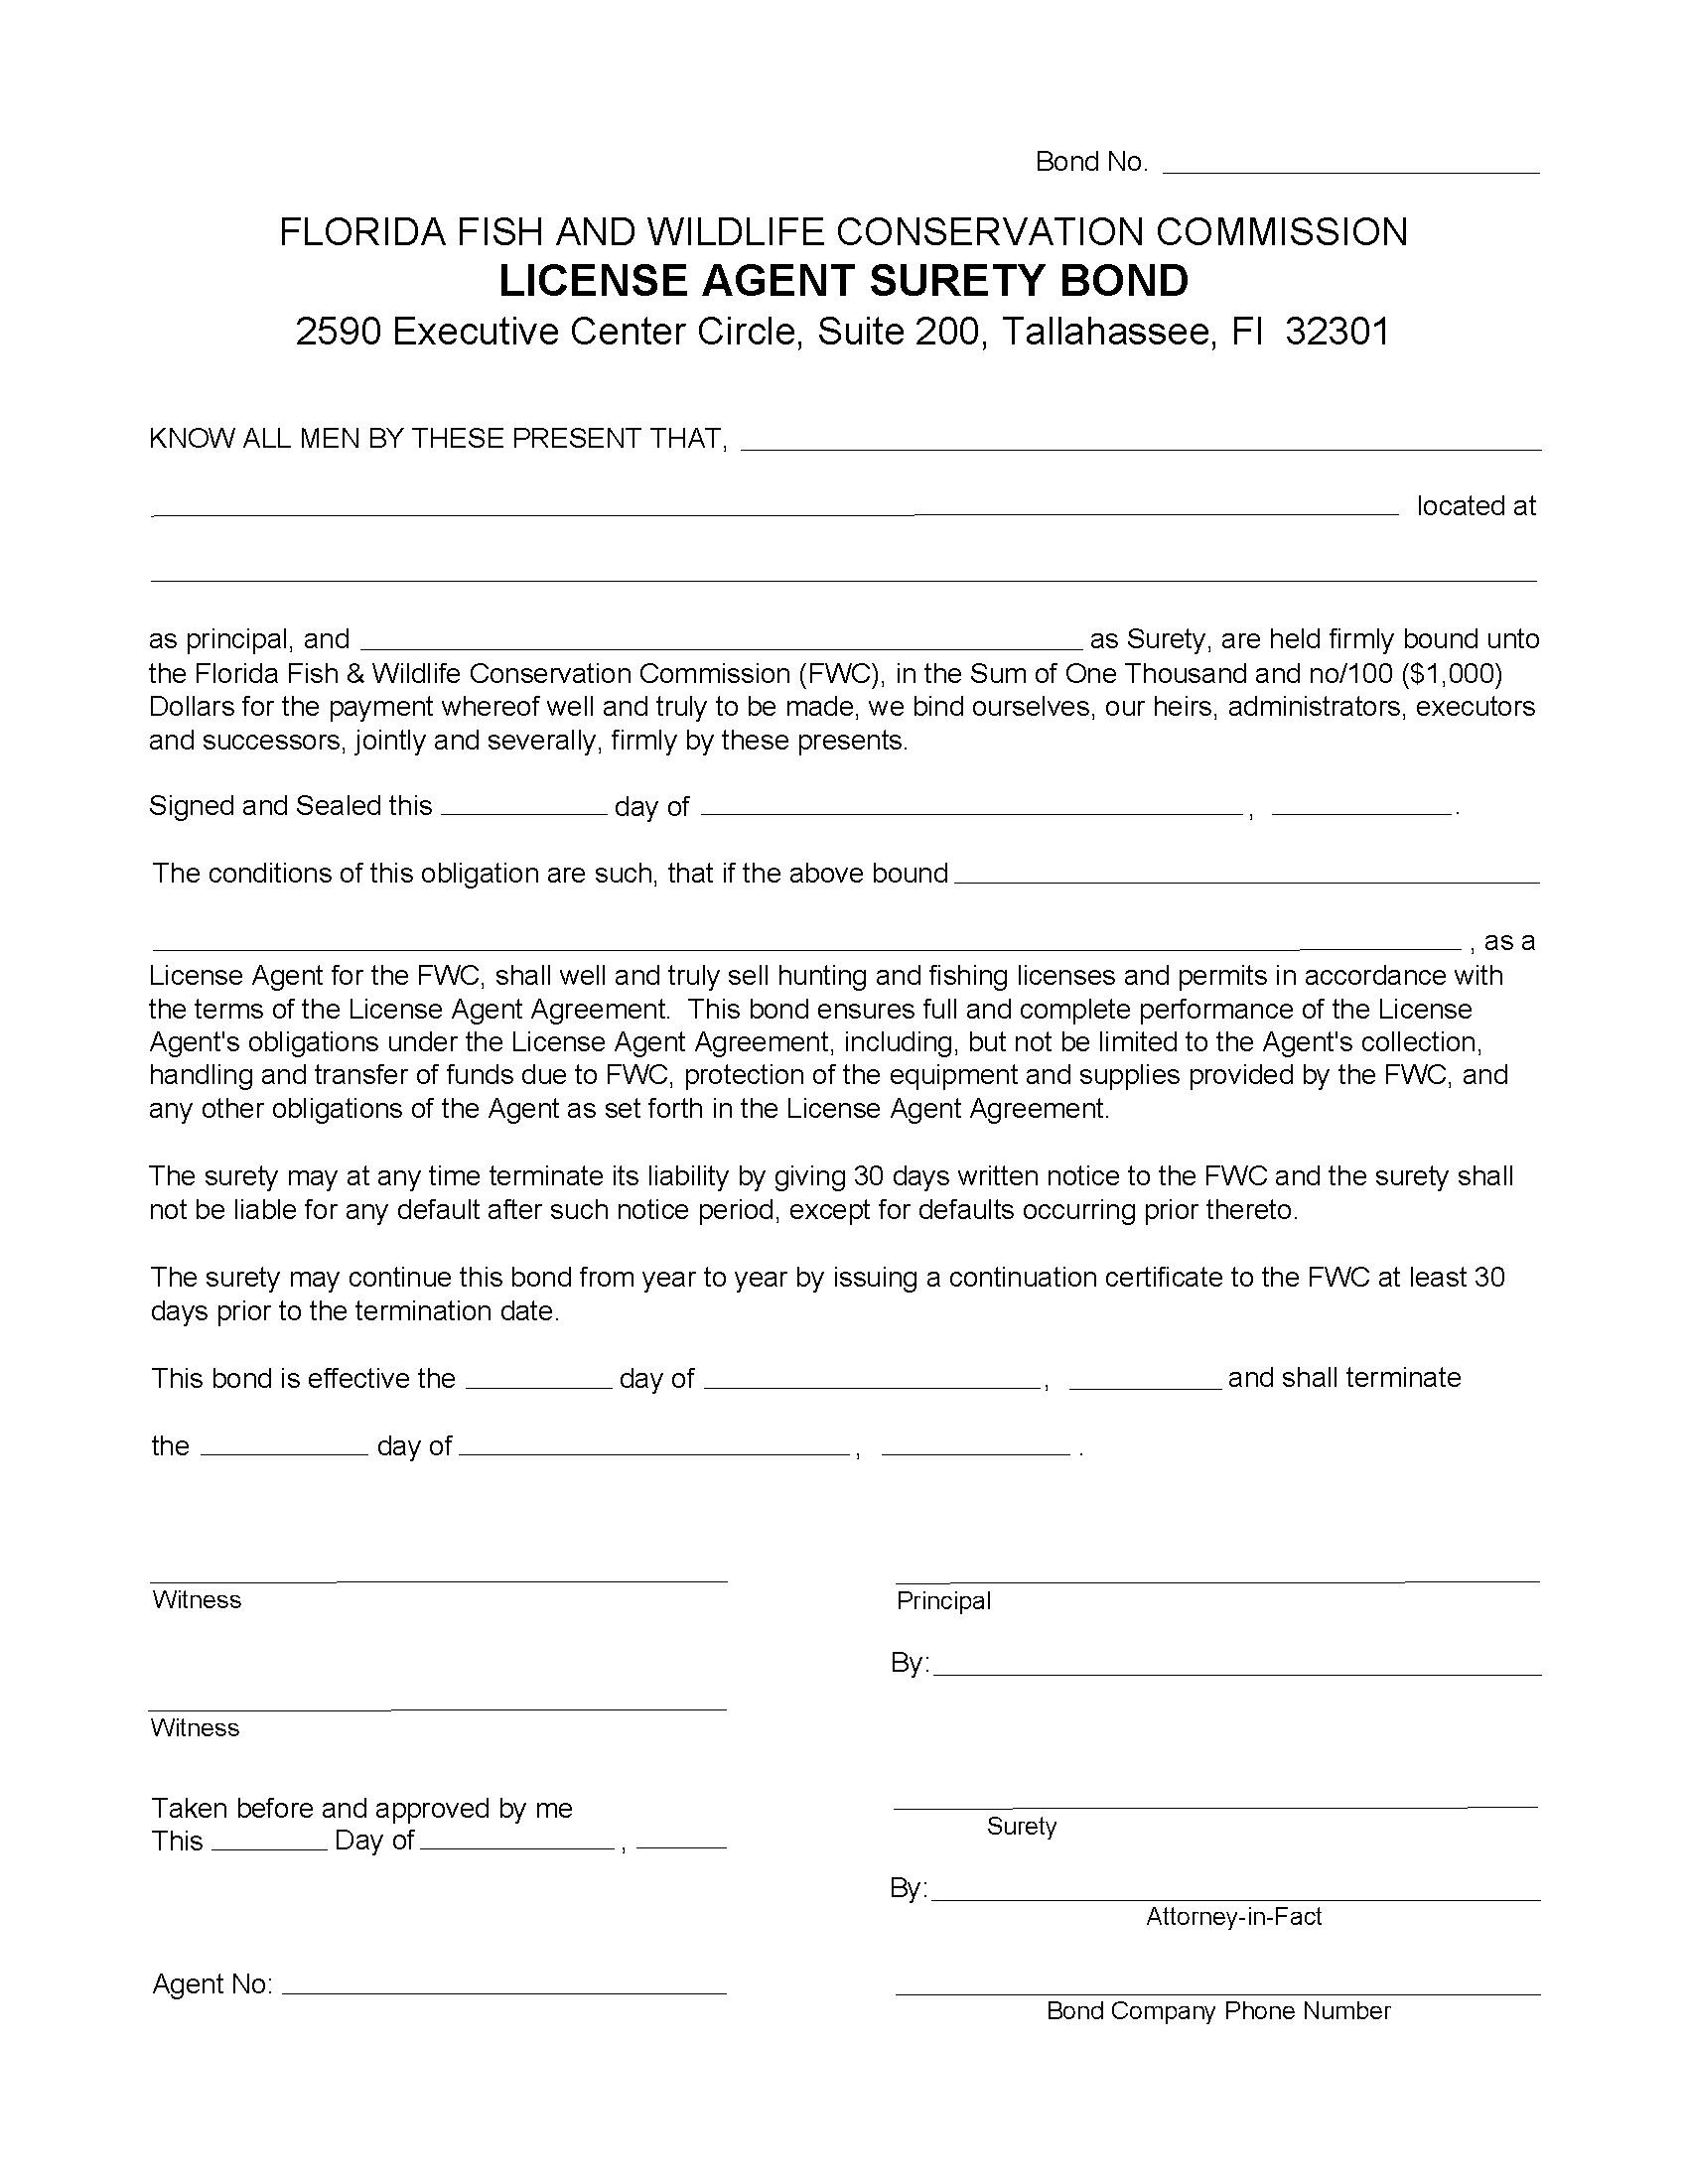 State of Florida Hunting and Fishing License Agent Bond sample image